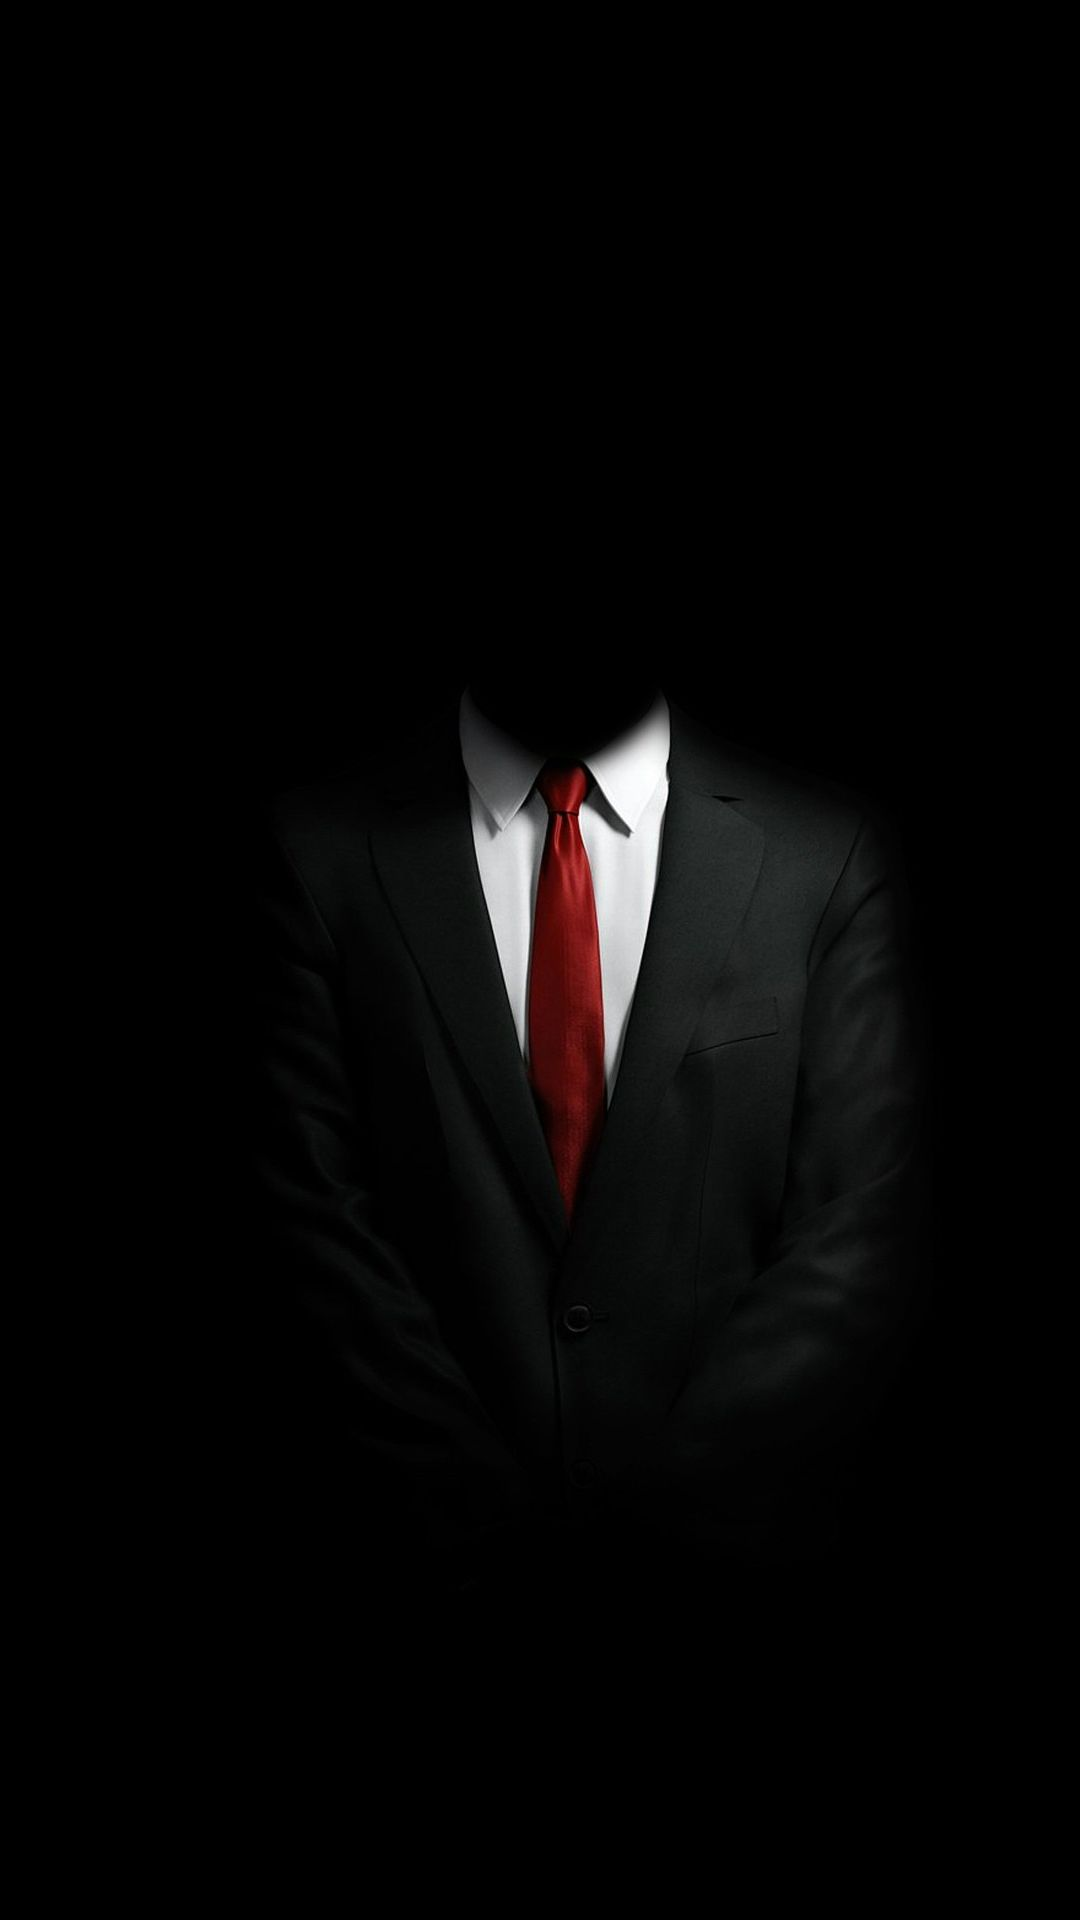 Mystery Man In Suit IPhone 7 Wallpaper